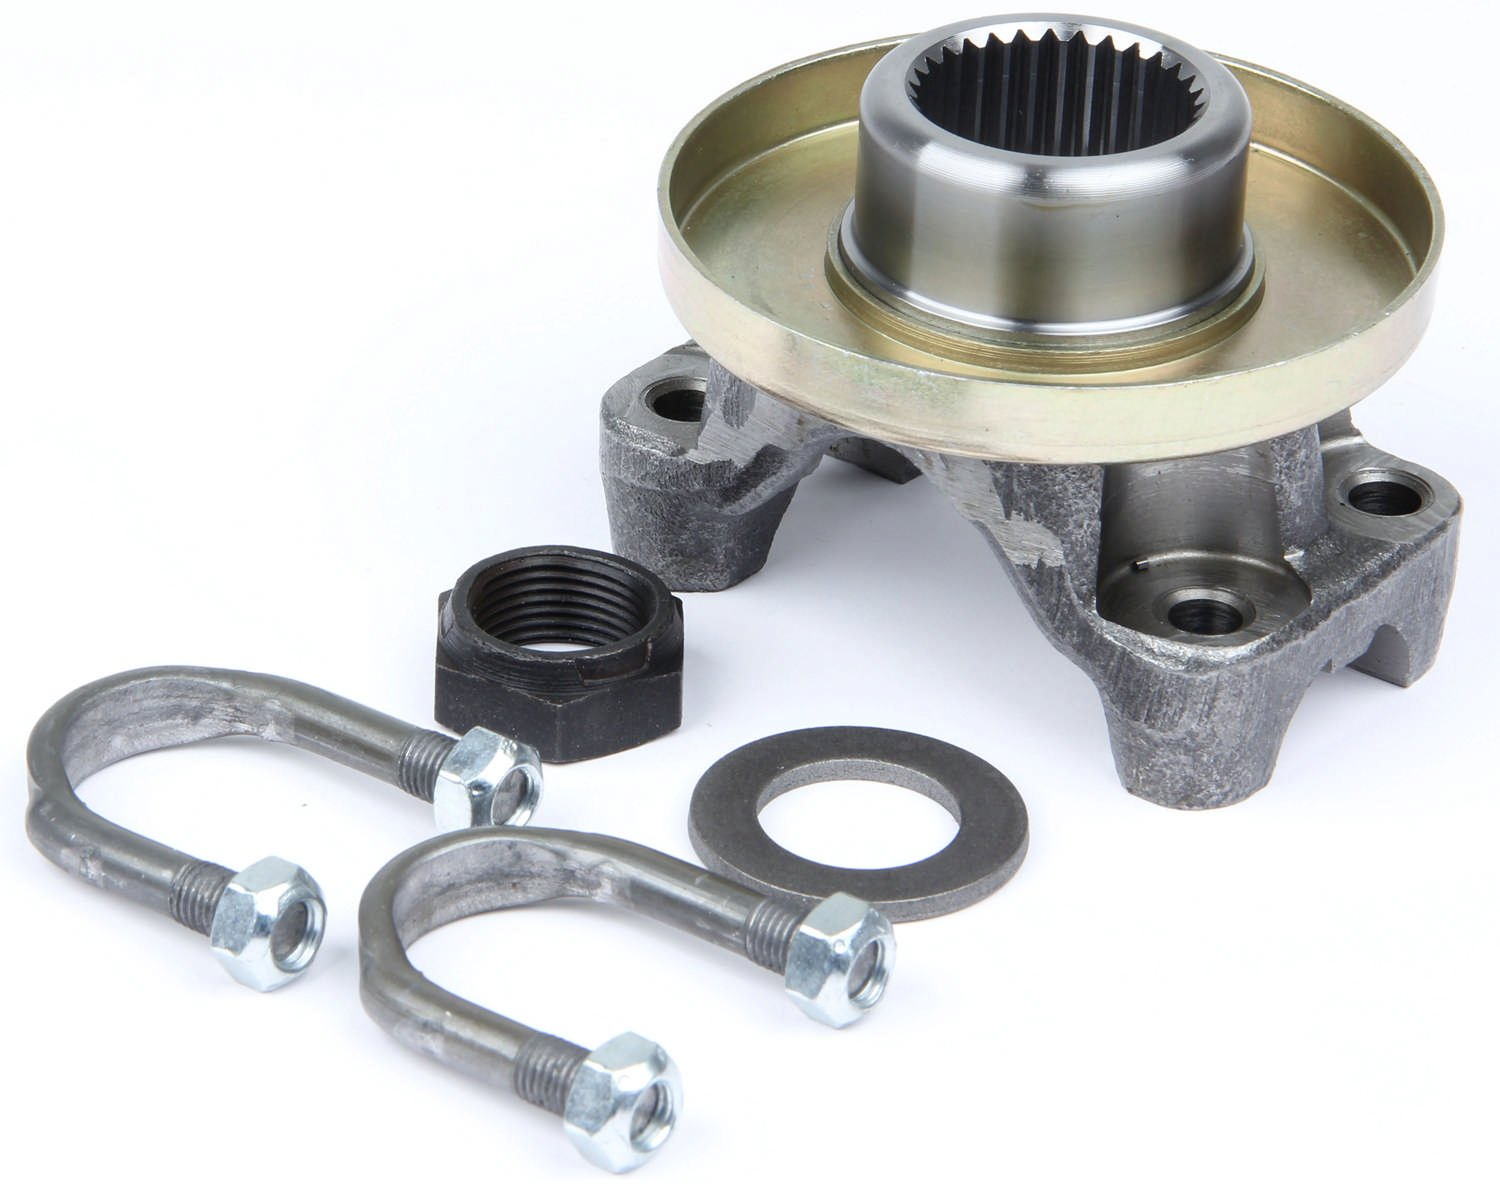 1310 Series Pinion Yoke with 12 Bolt and 30 Spline for GM Moser Engineering PY110